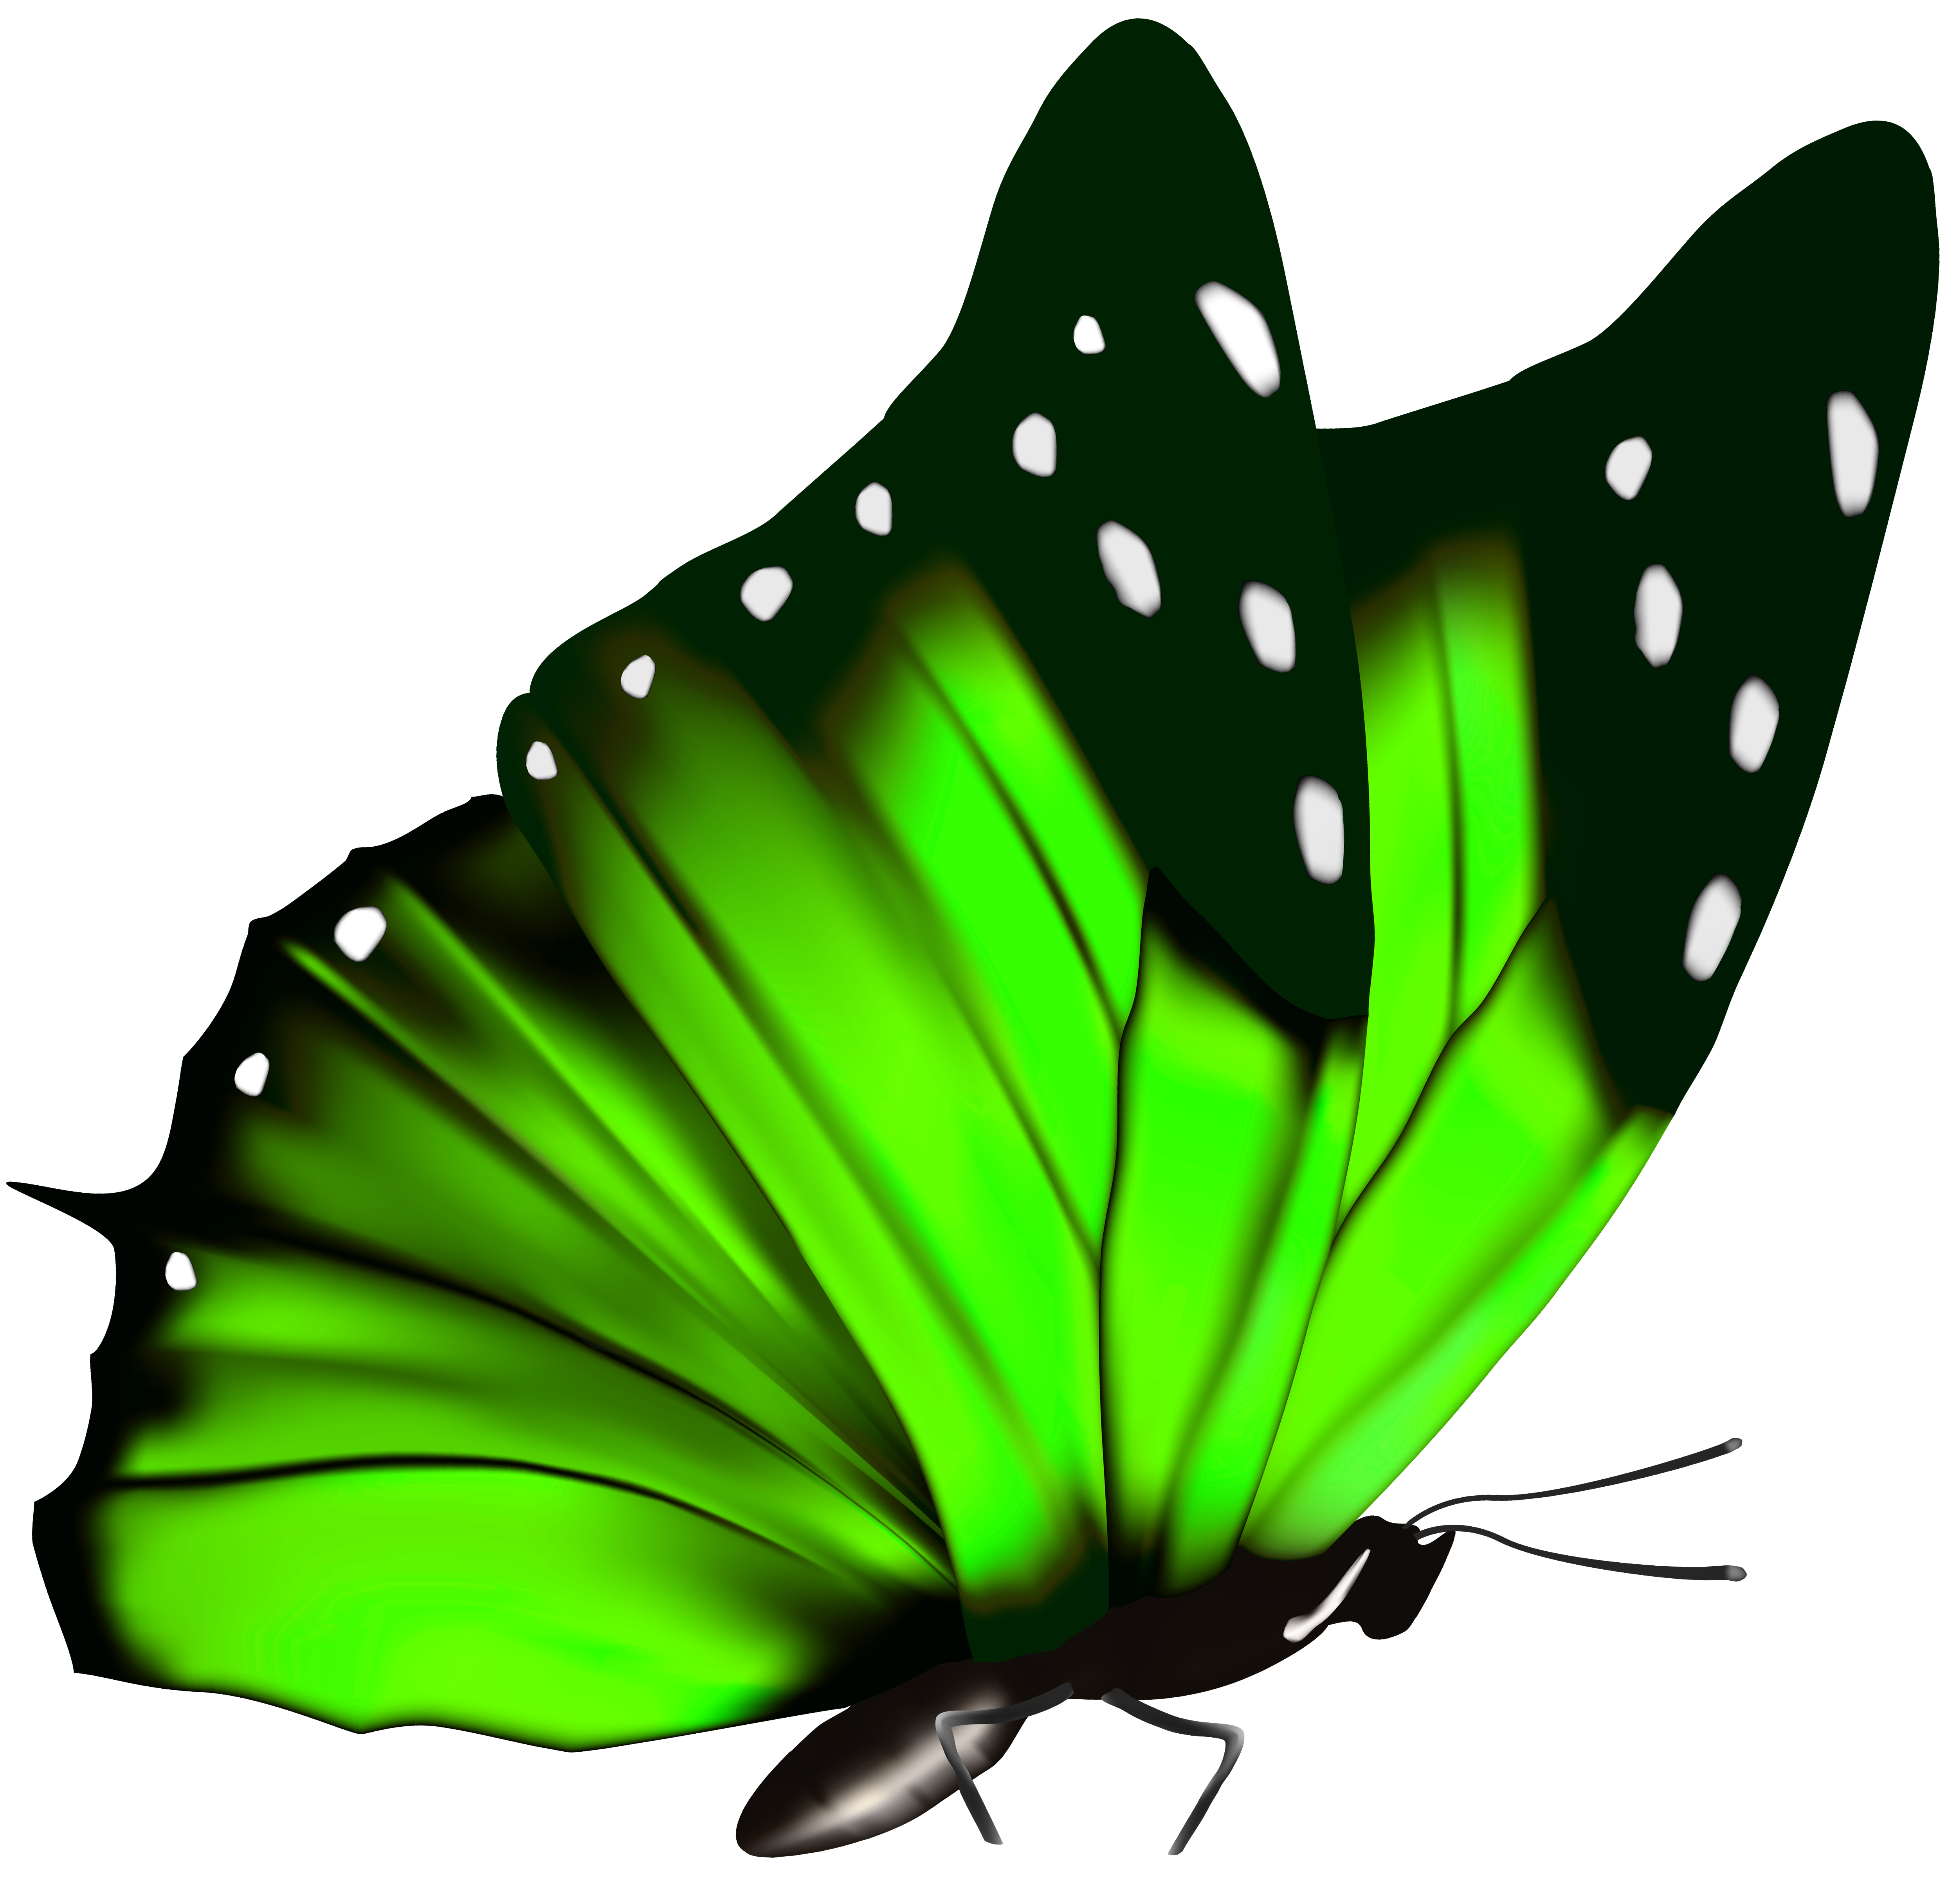 Green Butterfly Png Clipart Image Butterfly Illustration Butterfly Watercolor Butterflies Svg